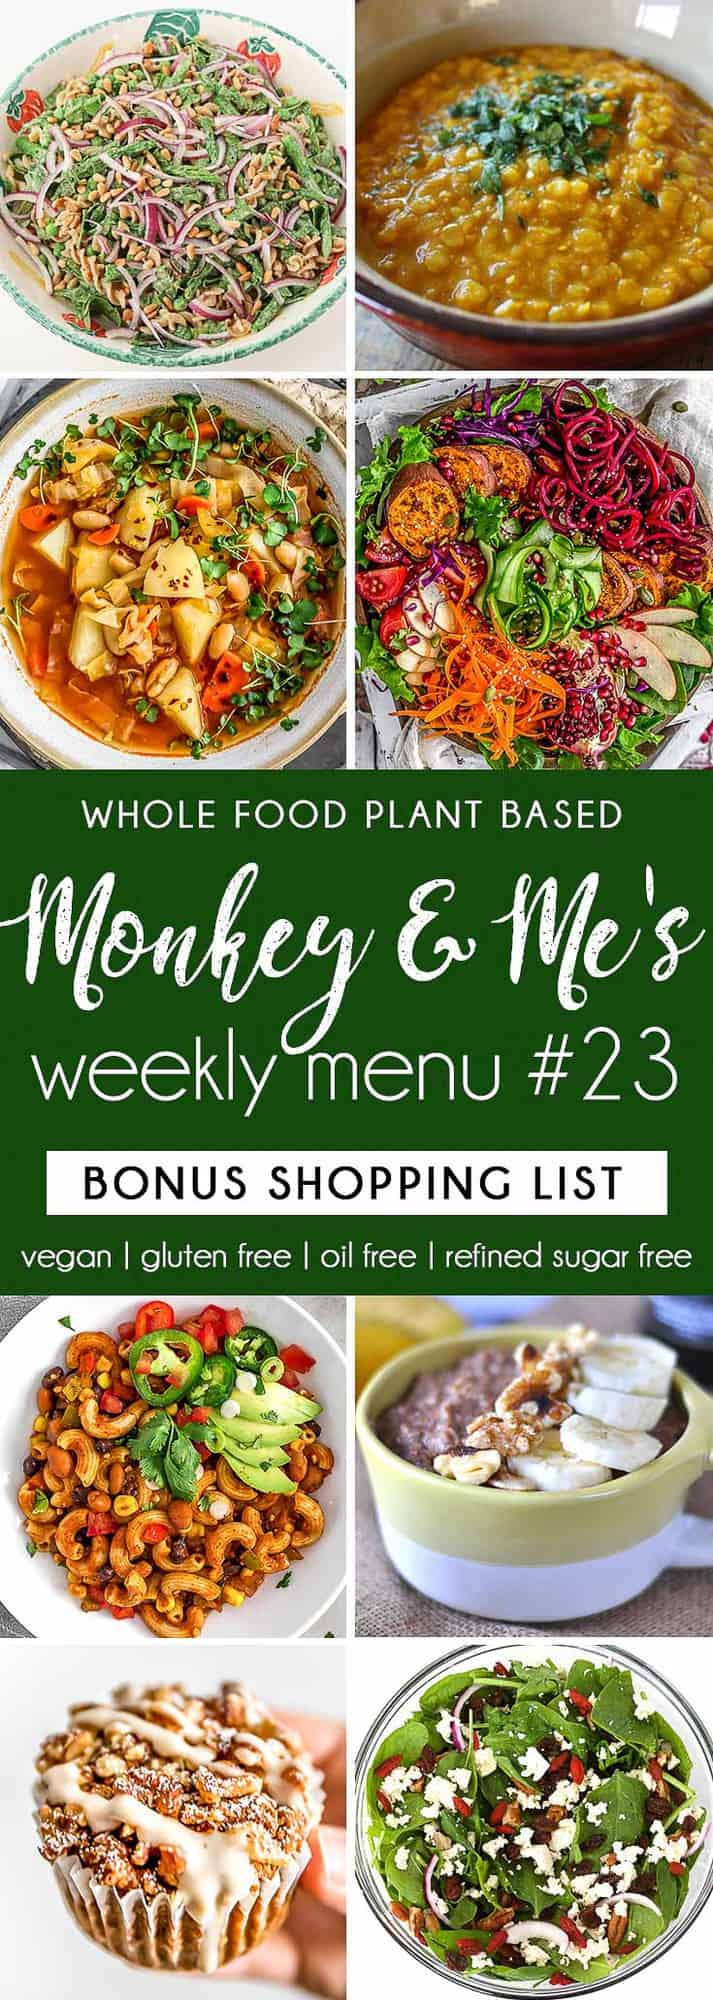 Monkey and Me's Menu 23 featuring 8 recipes